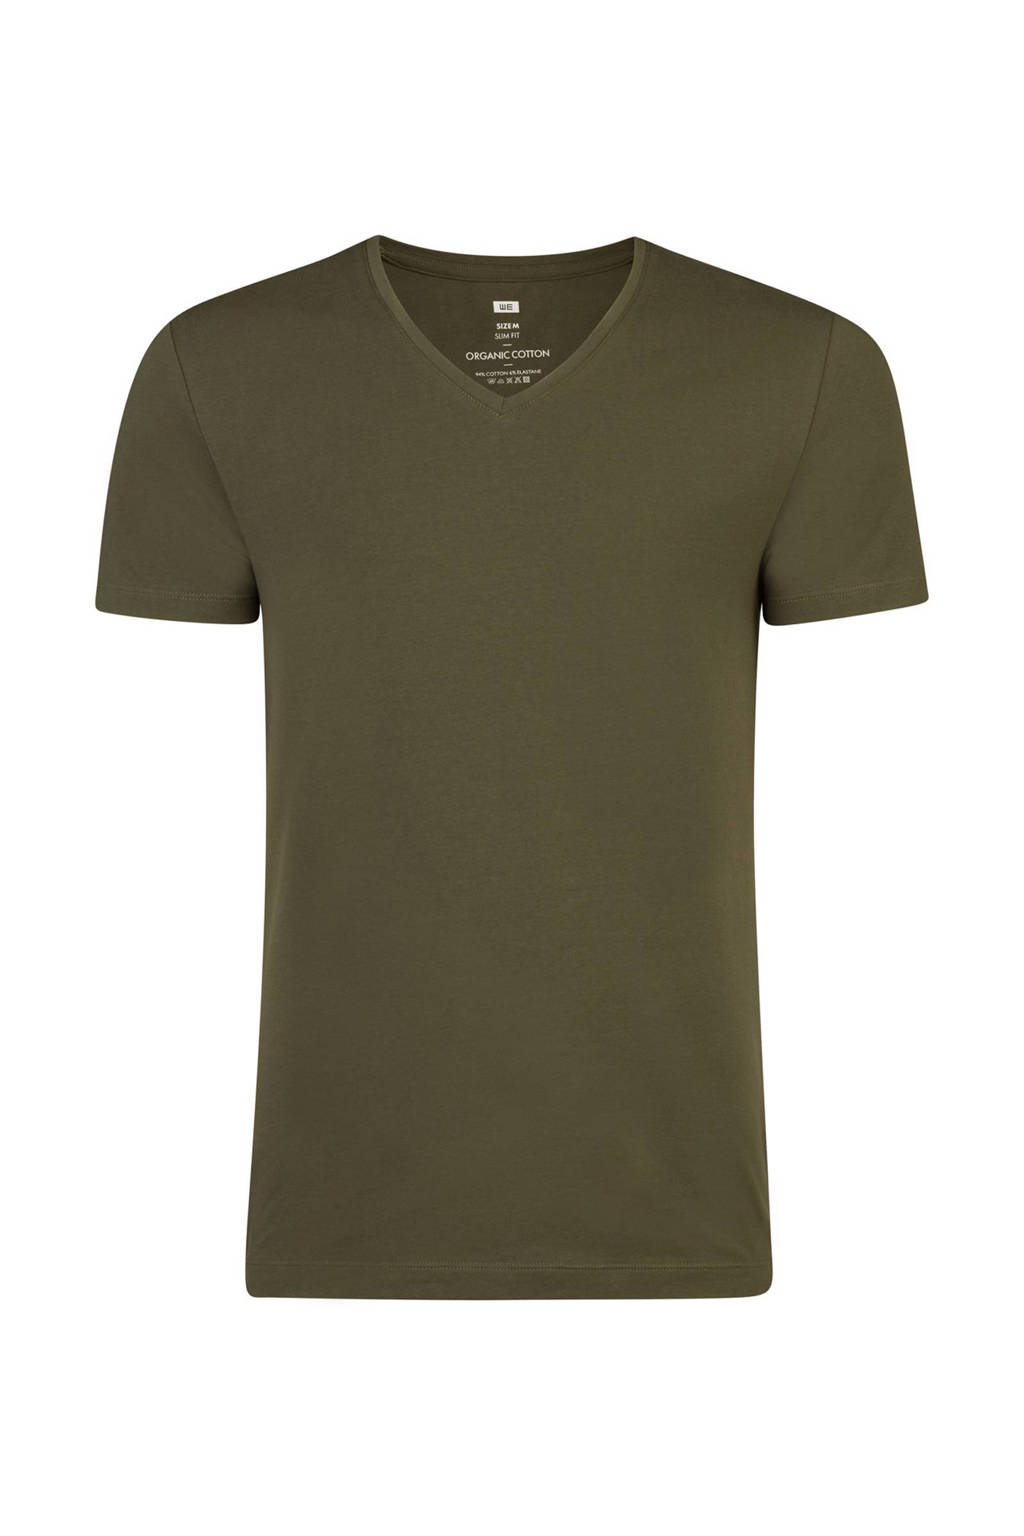 WE Fashion T-shirt, Legergroen